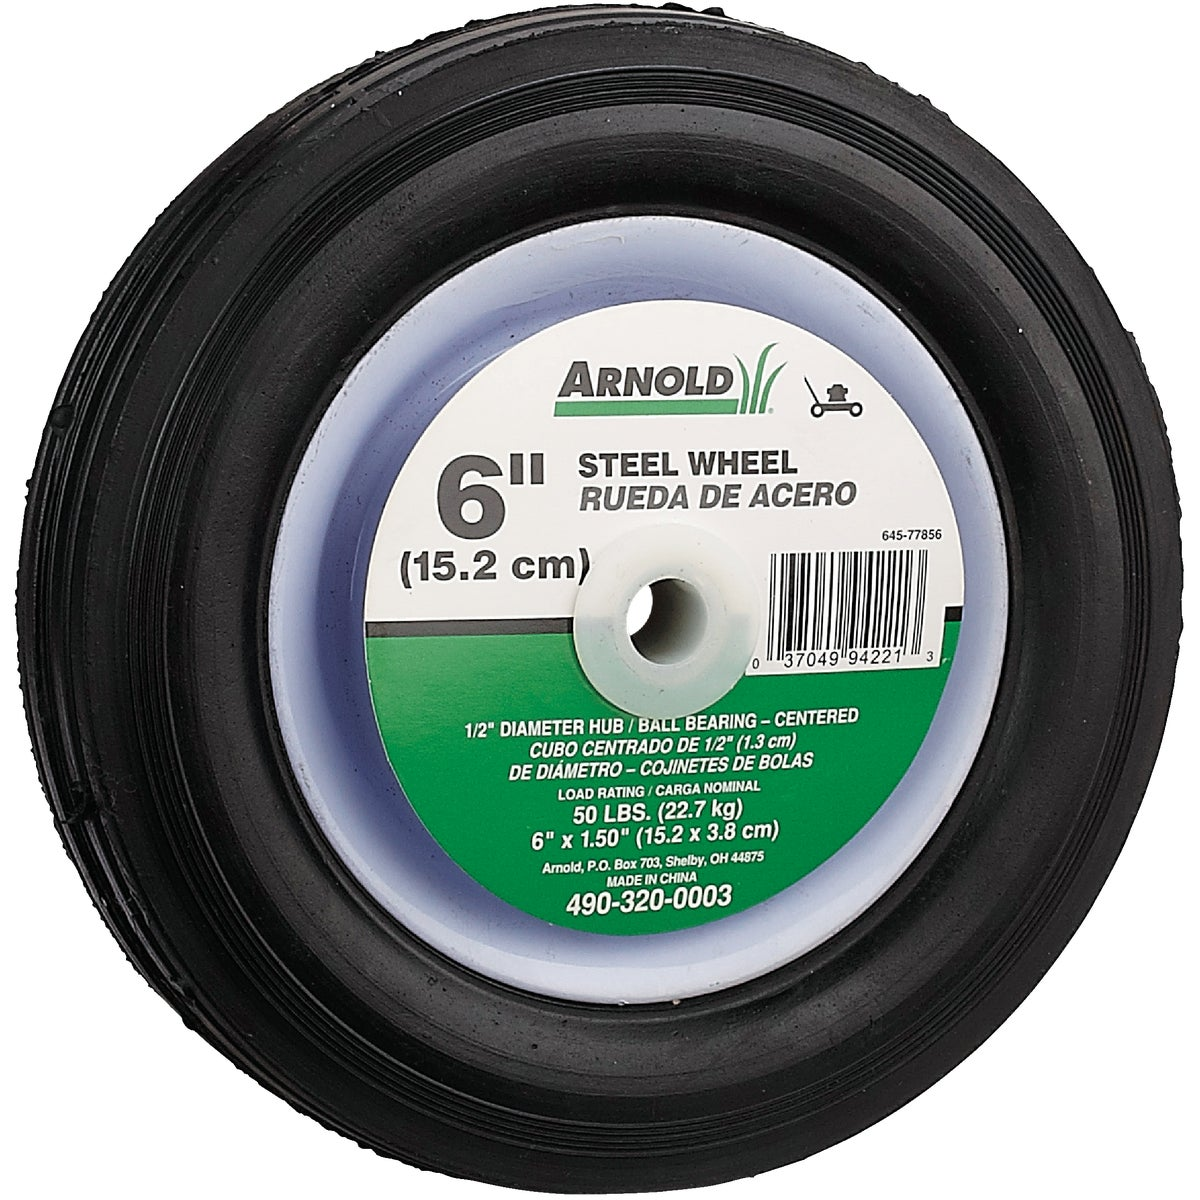 6X1.50 CTR STEEL WHEEL - 490-320-0003 by Arnold Corp